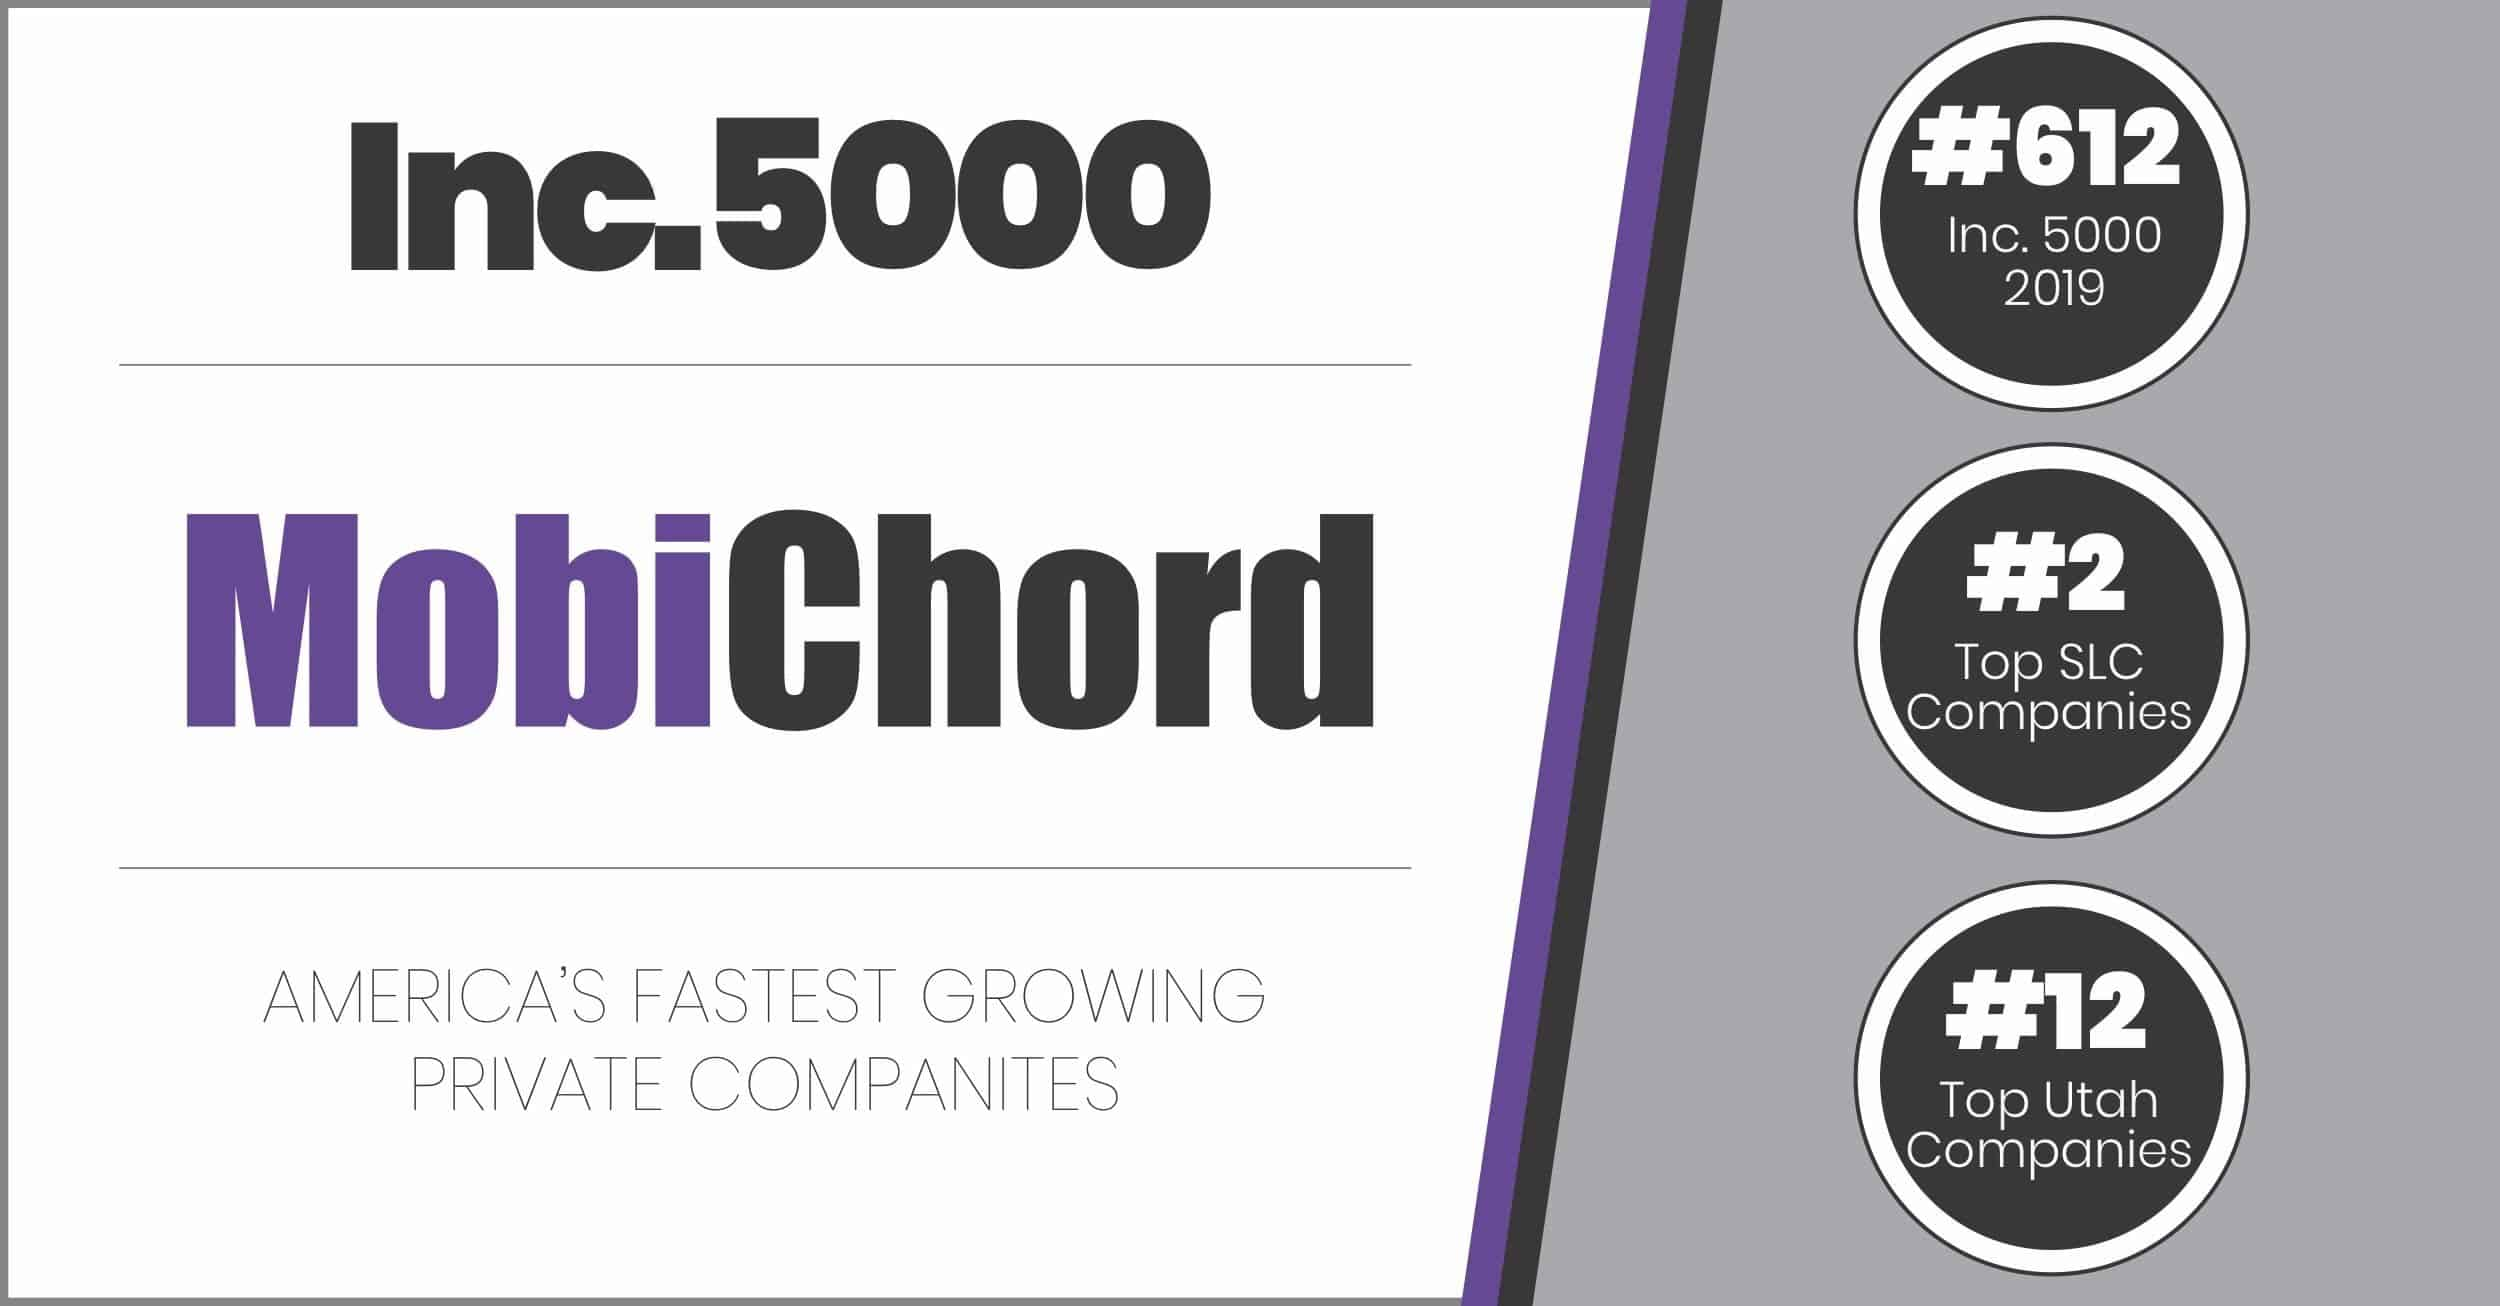 MobiChord Ranks #612 on Inc. 5000's List of America's Fastest Growing Companies